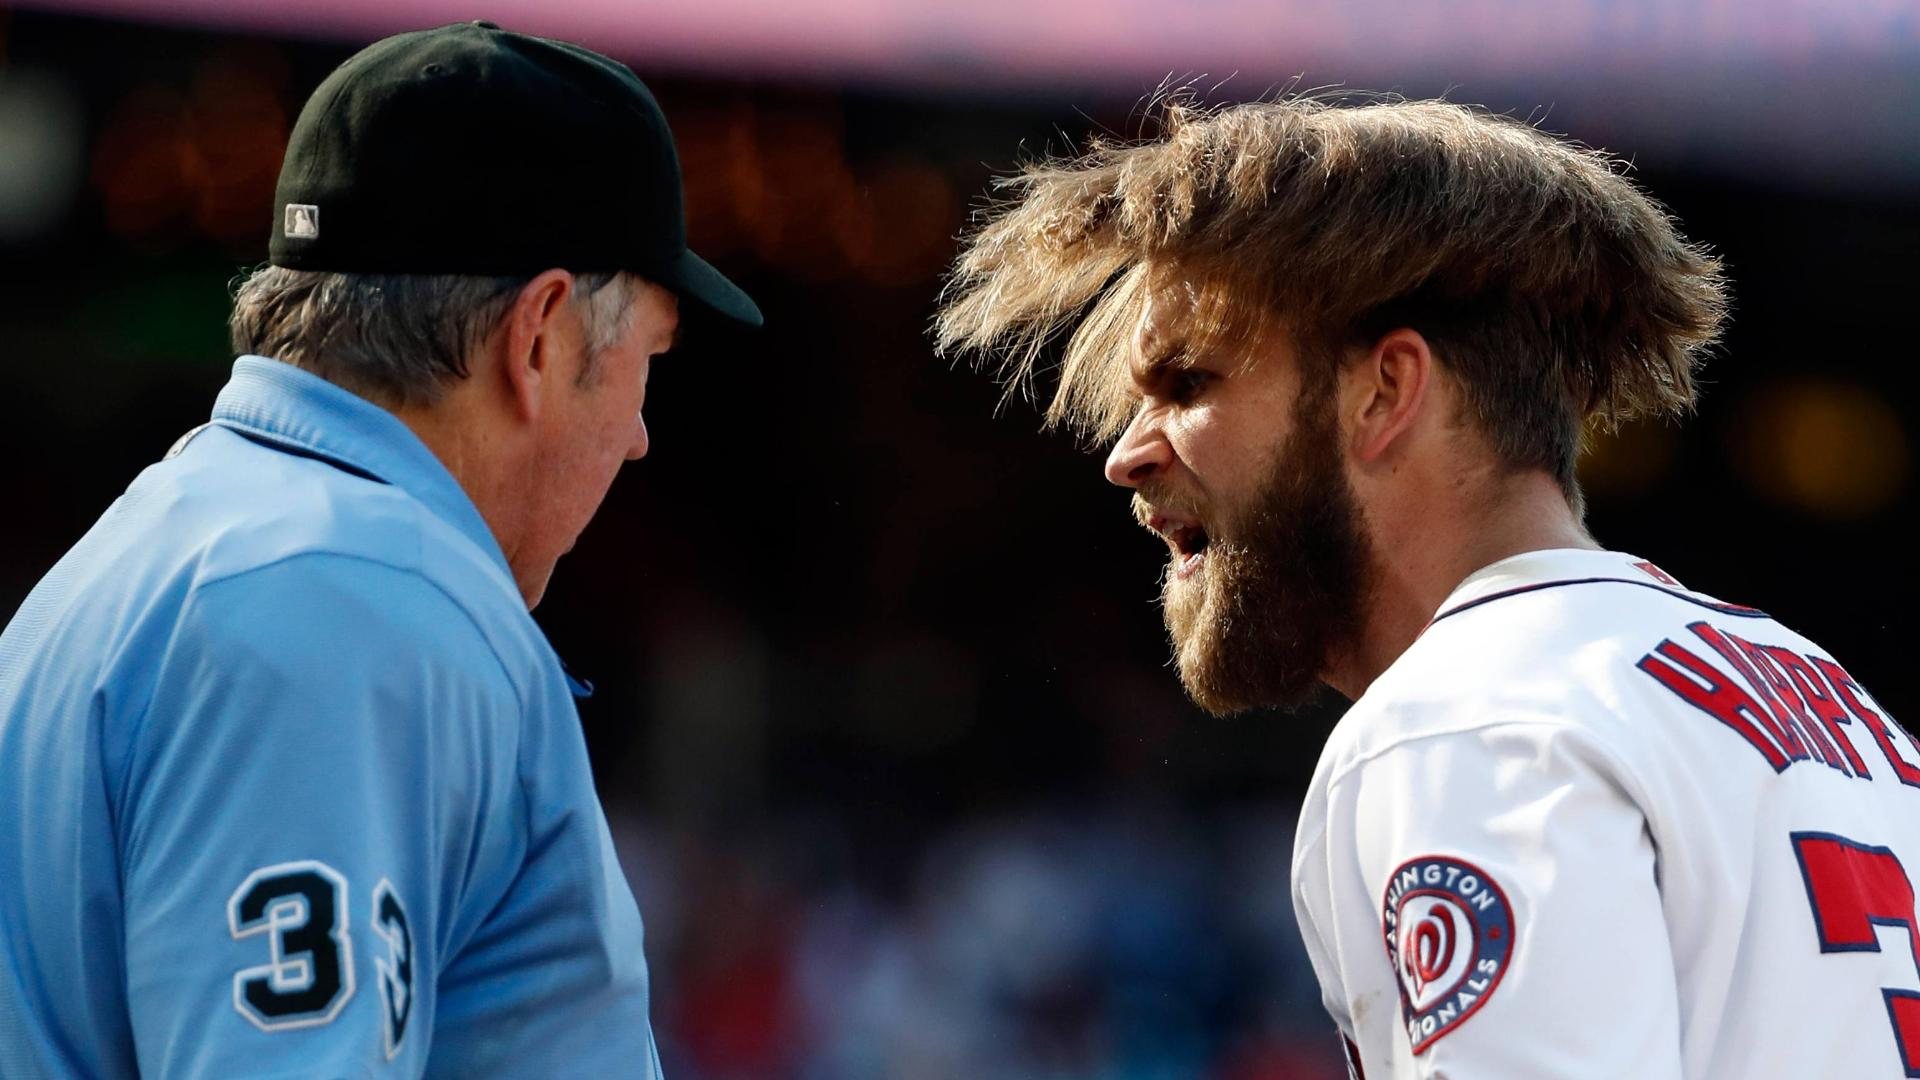 http://a.espncdn.com/media/motion/2016/0827/dm_160827_MLB_Nationals_Bryce_Harper_Ejected1382/dm_160827_MLB_Nationals_Bryce_Harper_Ejected1382.jpg